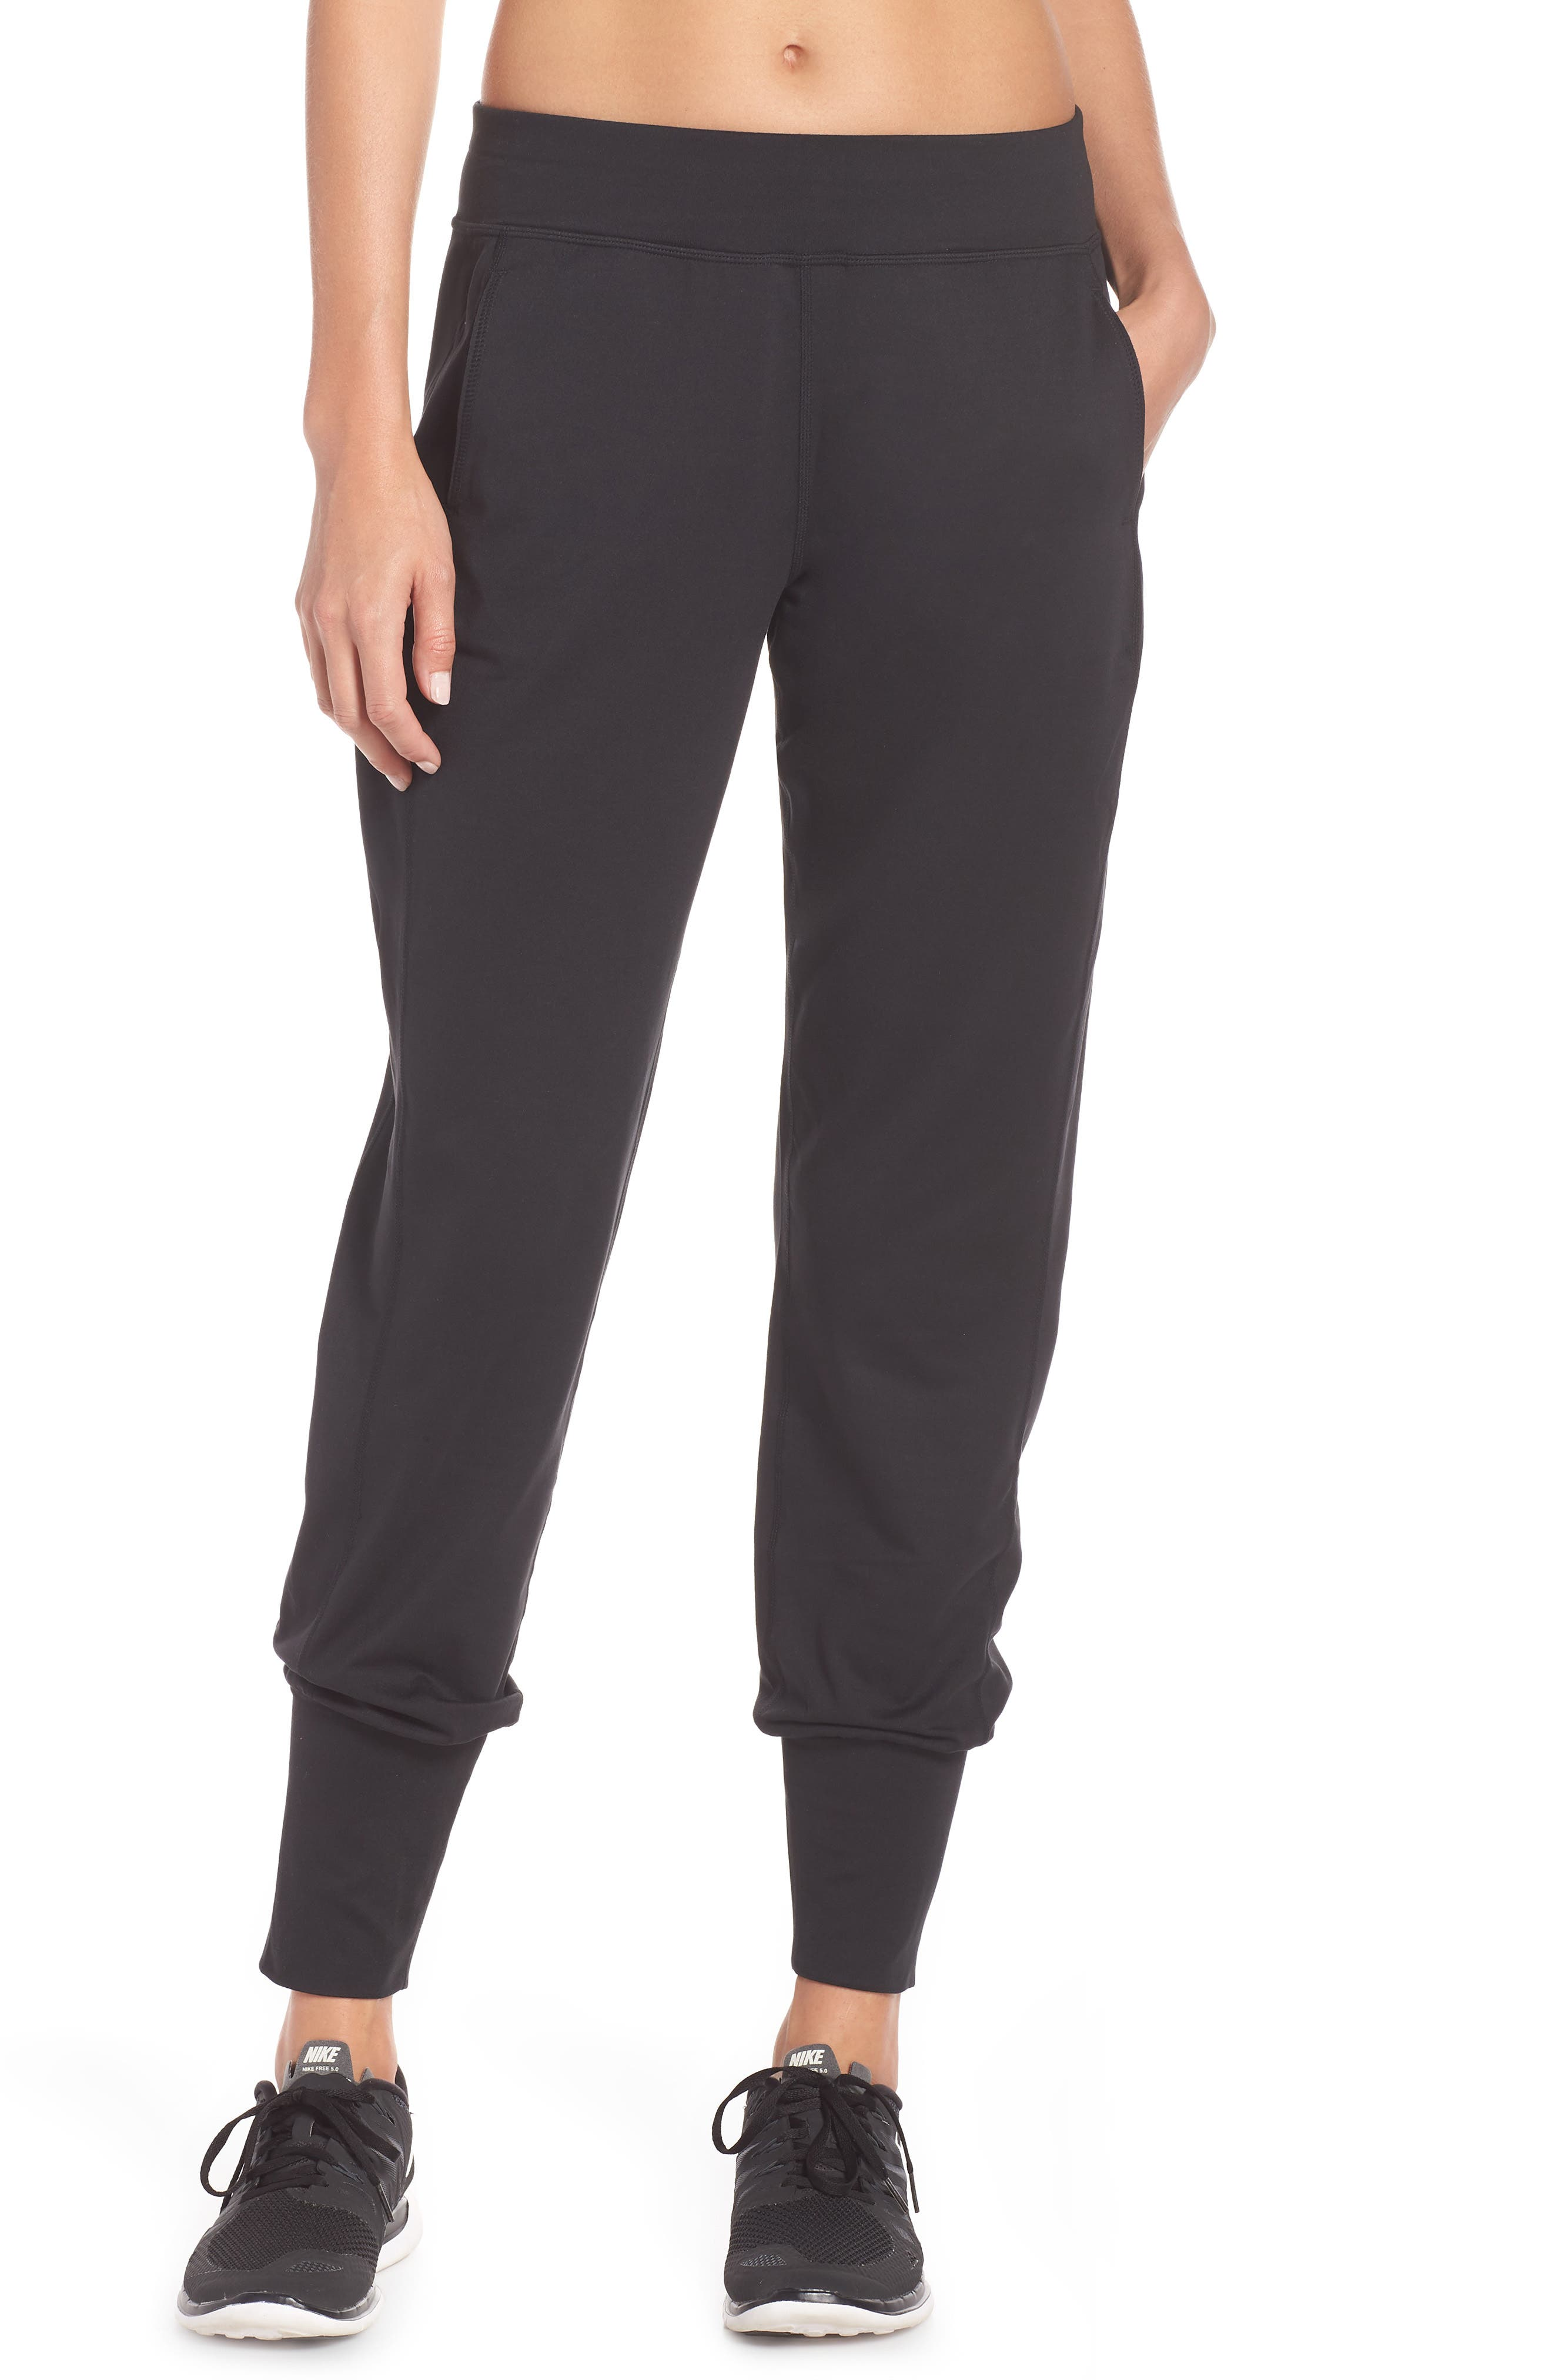 Garudasana Yoga Trousers,                             Main thumbnail 1, color,                             BLACK